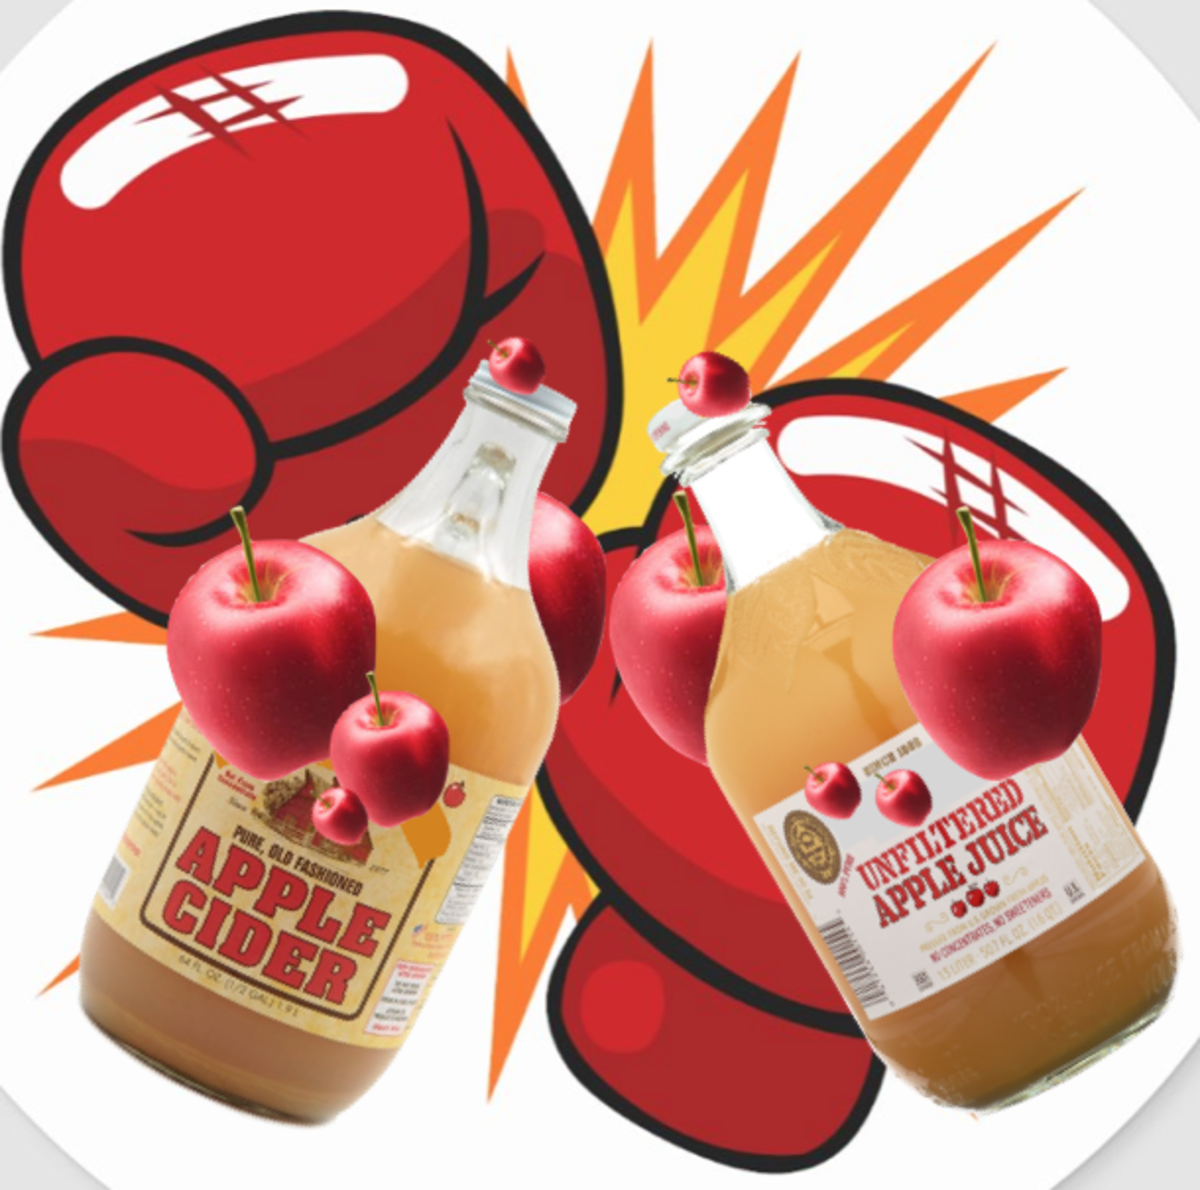 Get ready for the unfiltered apple juice vs. apple cider smackdown!